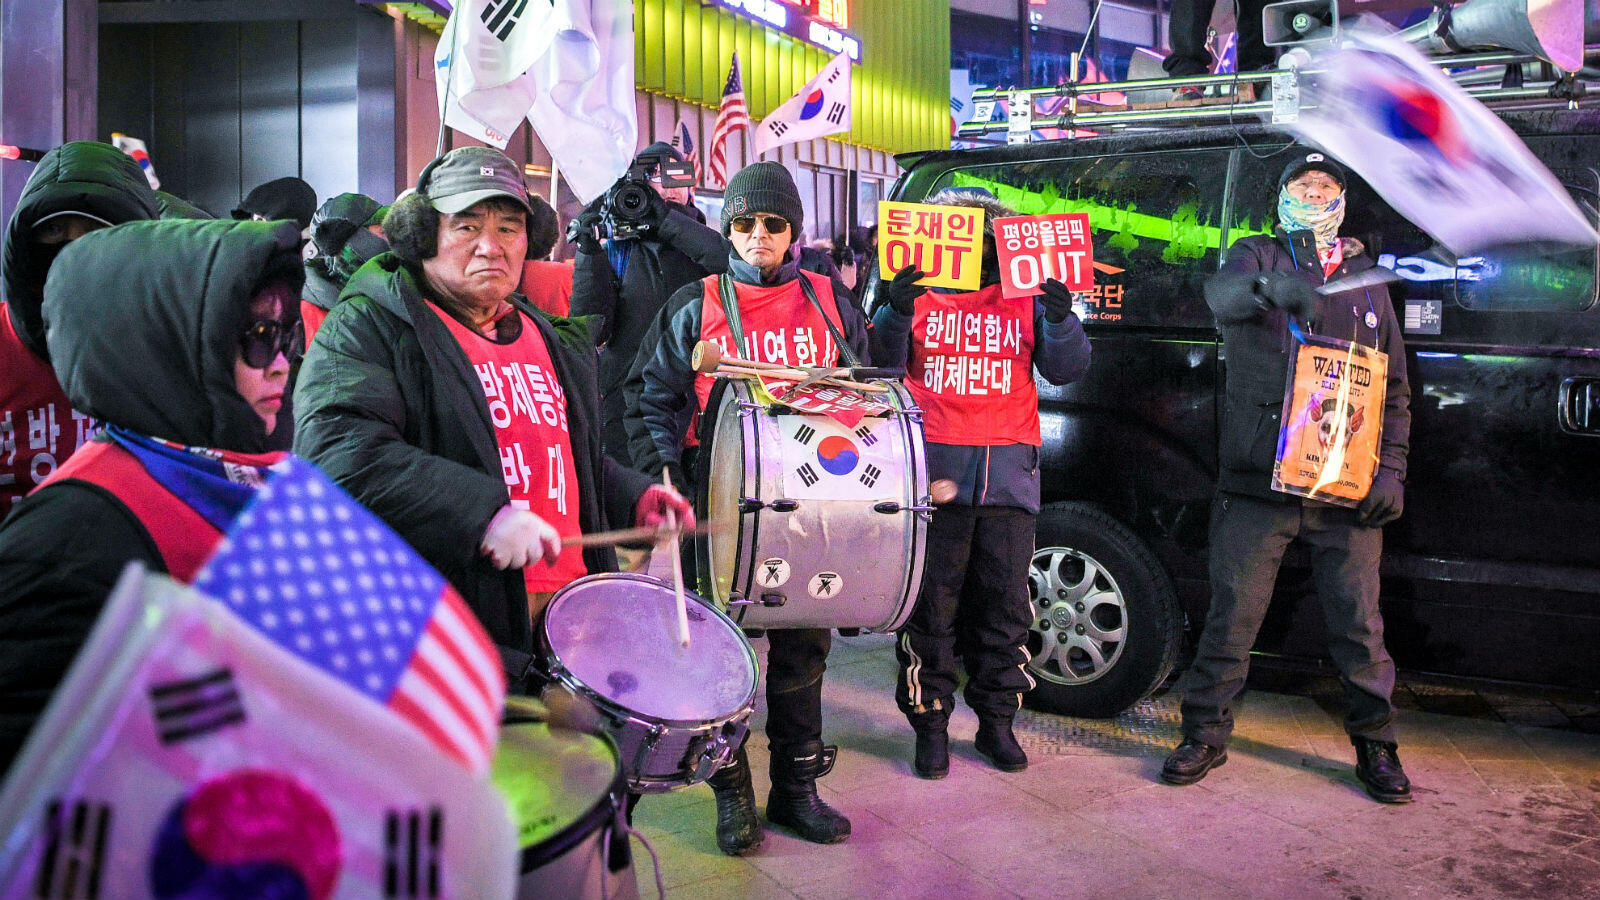 But the symbolic rapprochement between the two Koreas has provoked some discontent, with protesters gathering outside the stadium.